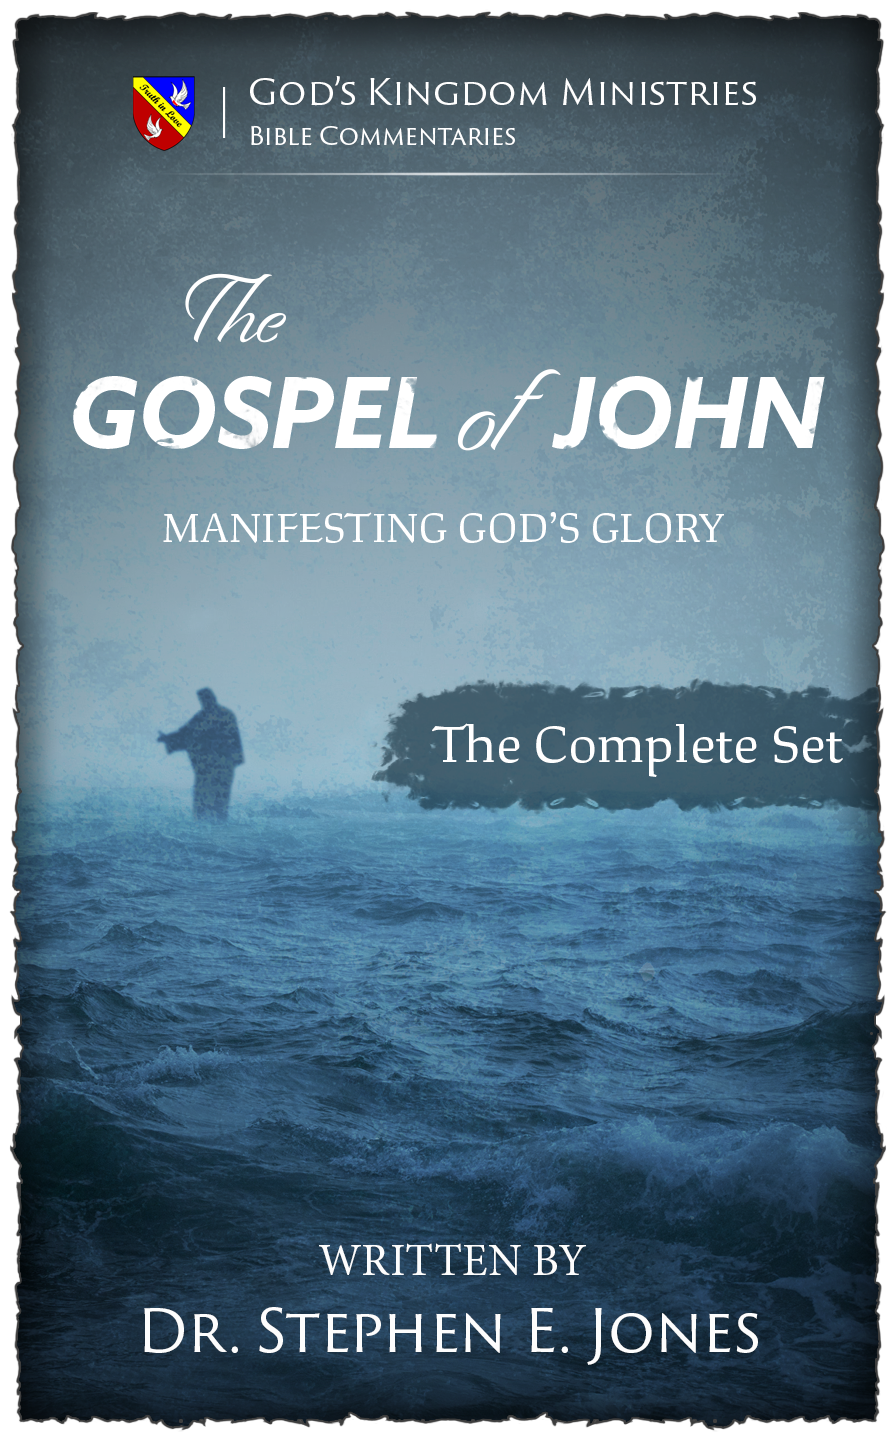 The-Gospel-of-John-Cover-The-Complete-Set.png